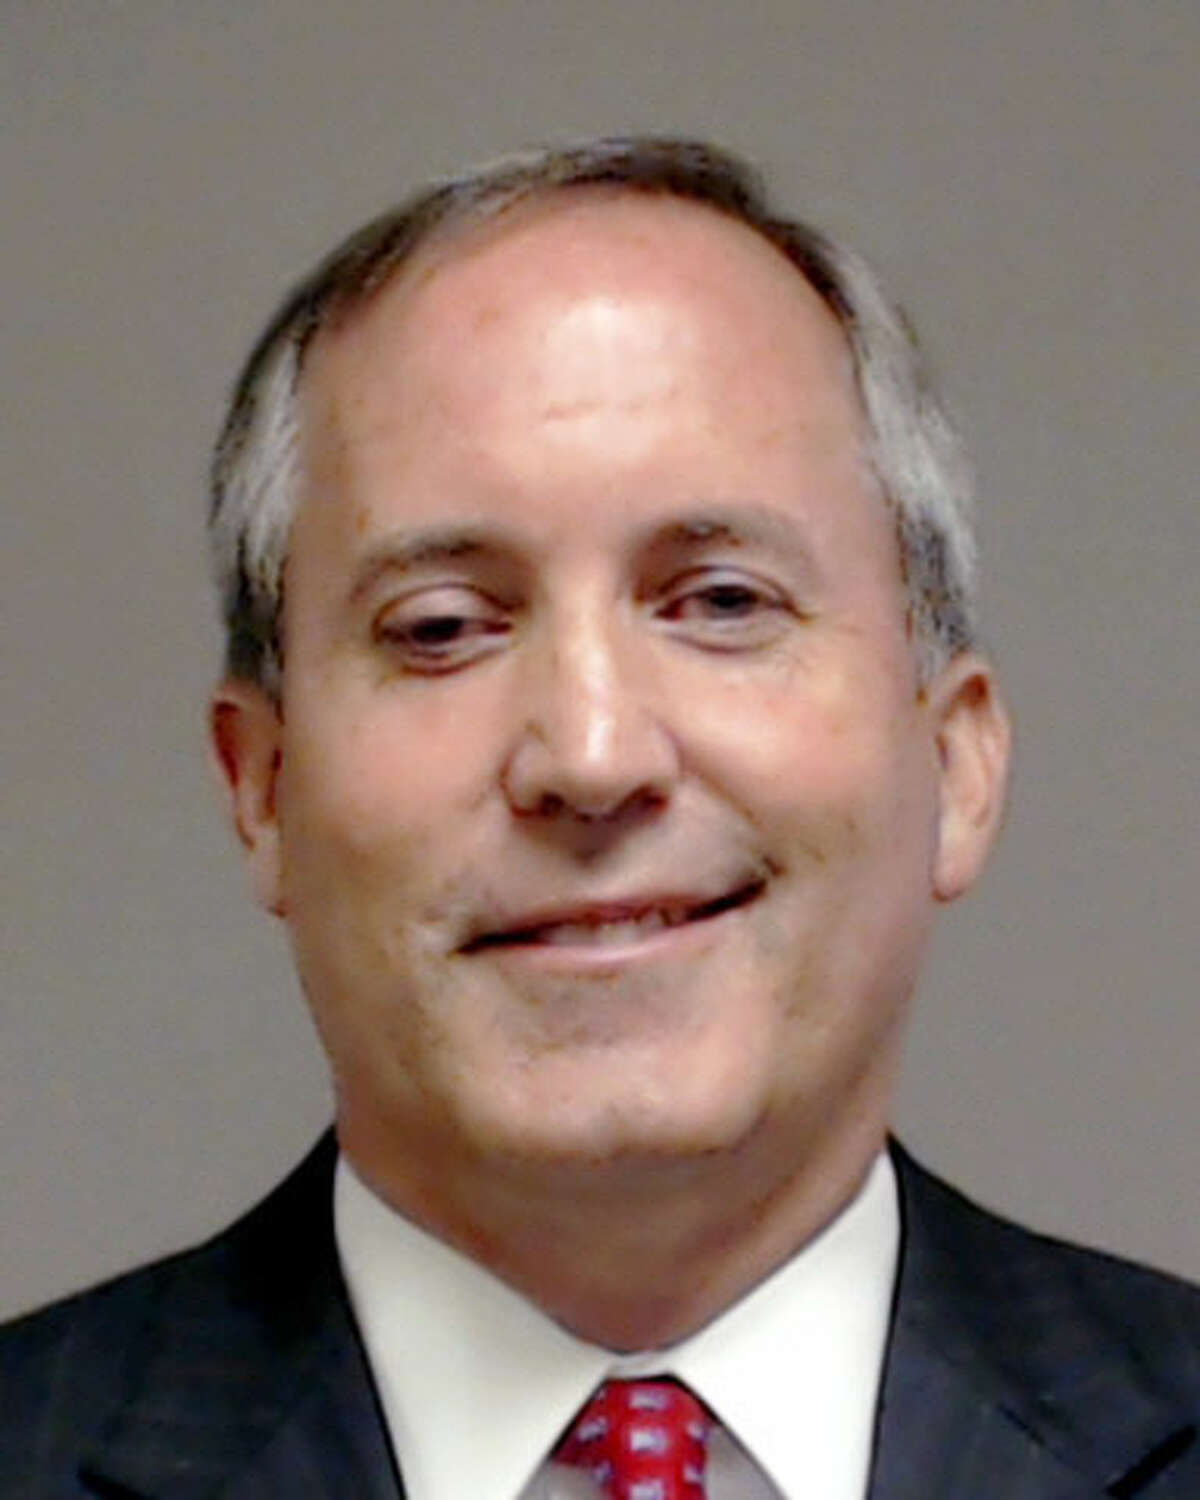 This handout photo provided by Collin County, Texas shows Texas Attorney General Kenneth Paxton, who was booked into the county jail Monday, Aug. 3, 2015, in McKinney, Texas. A grand jury last week indicted Paxton on felony securities fraud charges. (AP Photo/Collin County via AP)